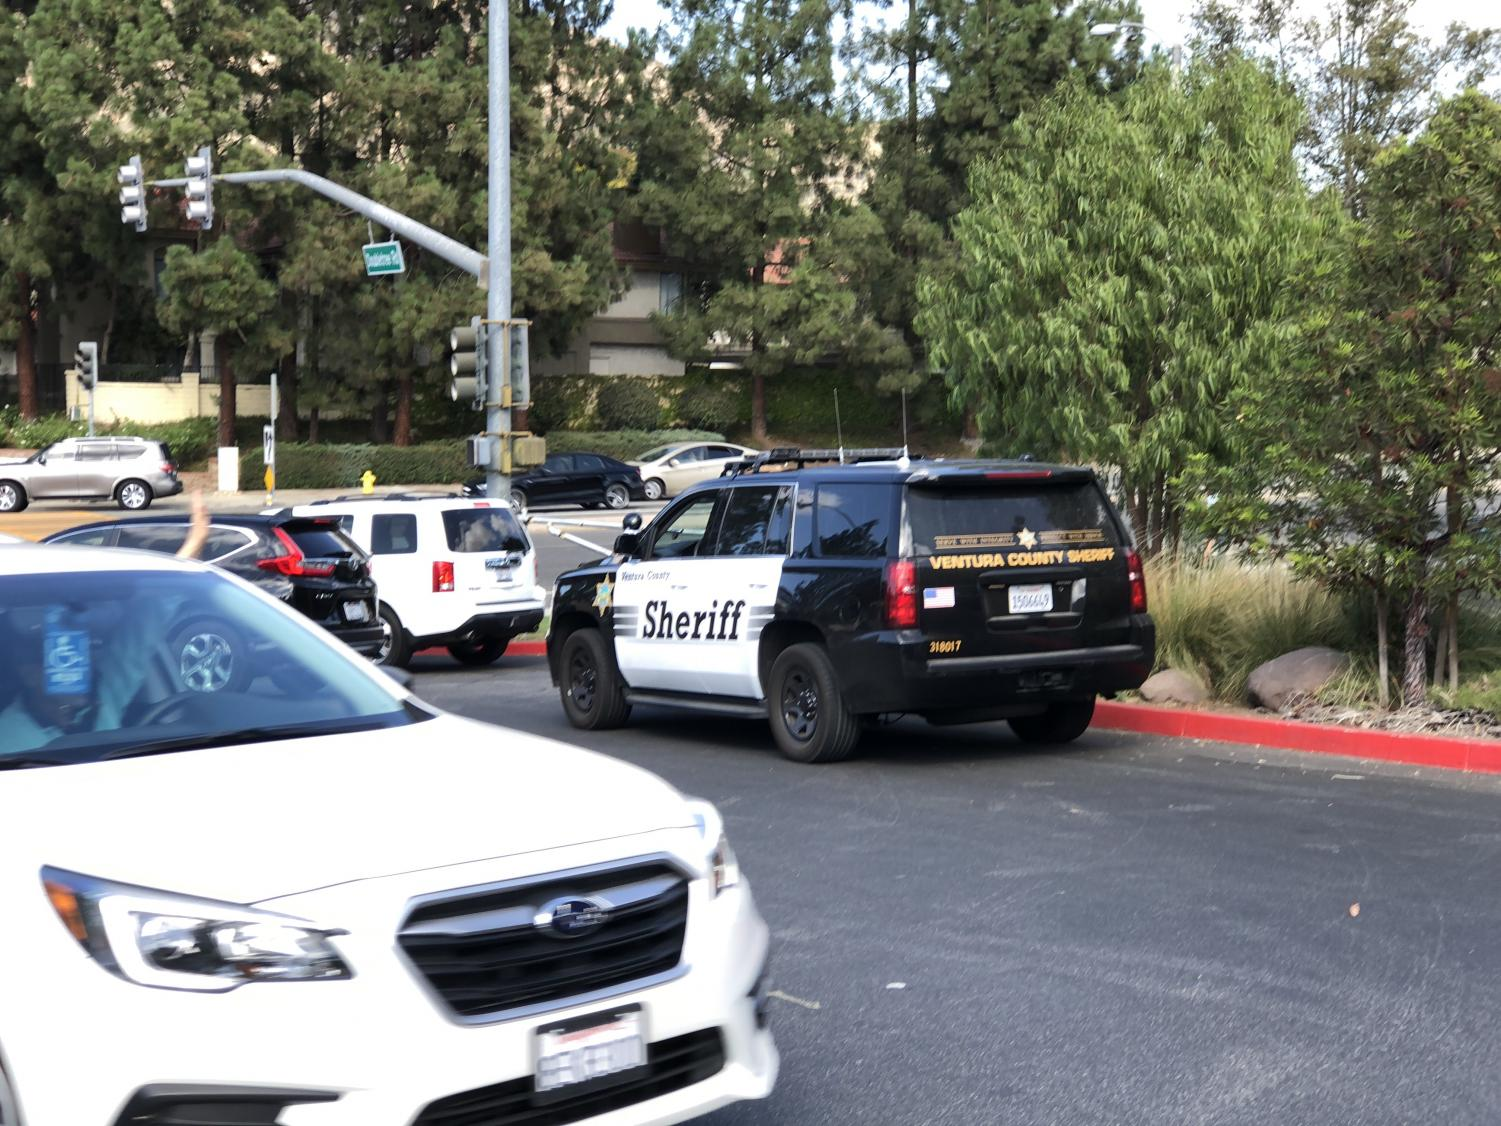 Police cars at the Oak Park high school exit.